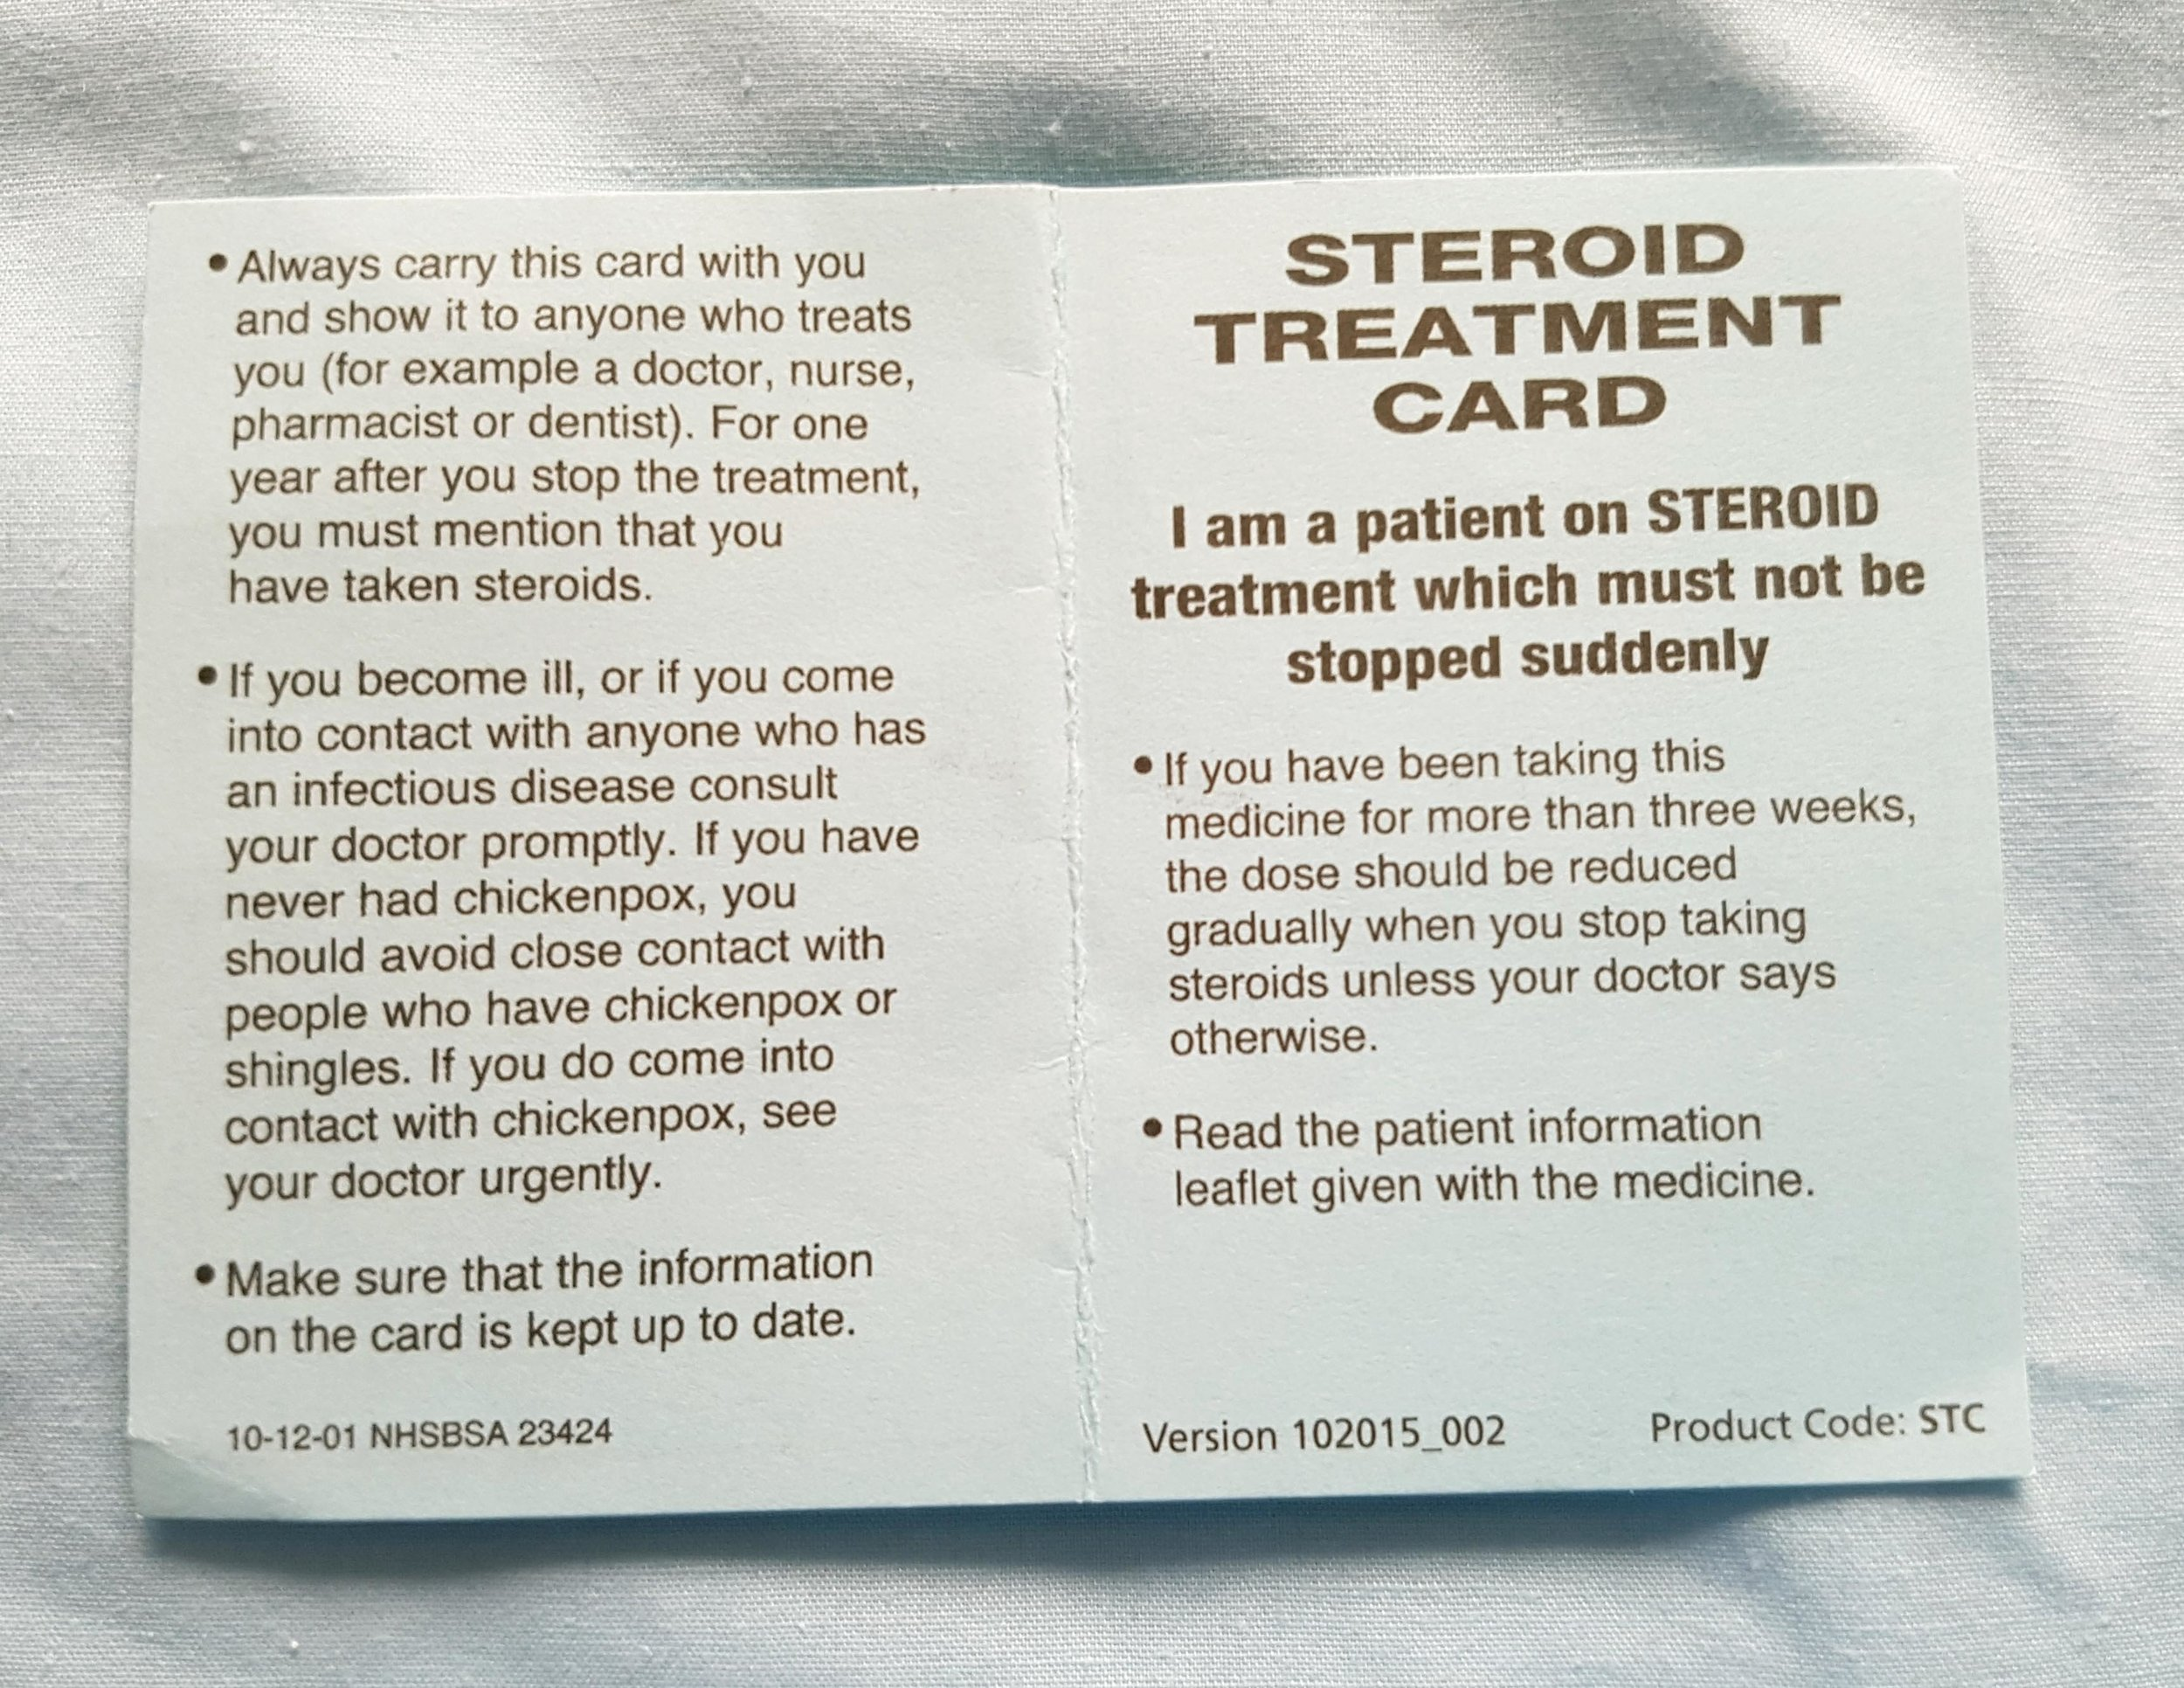 Once you start using steroids, you have to keep this card to hand for a year. ( Image: Bandidge )